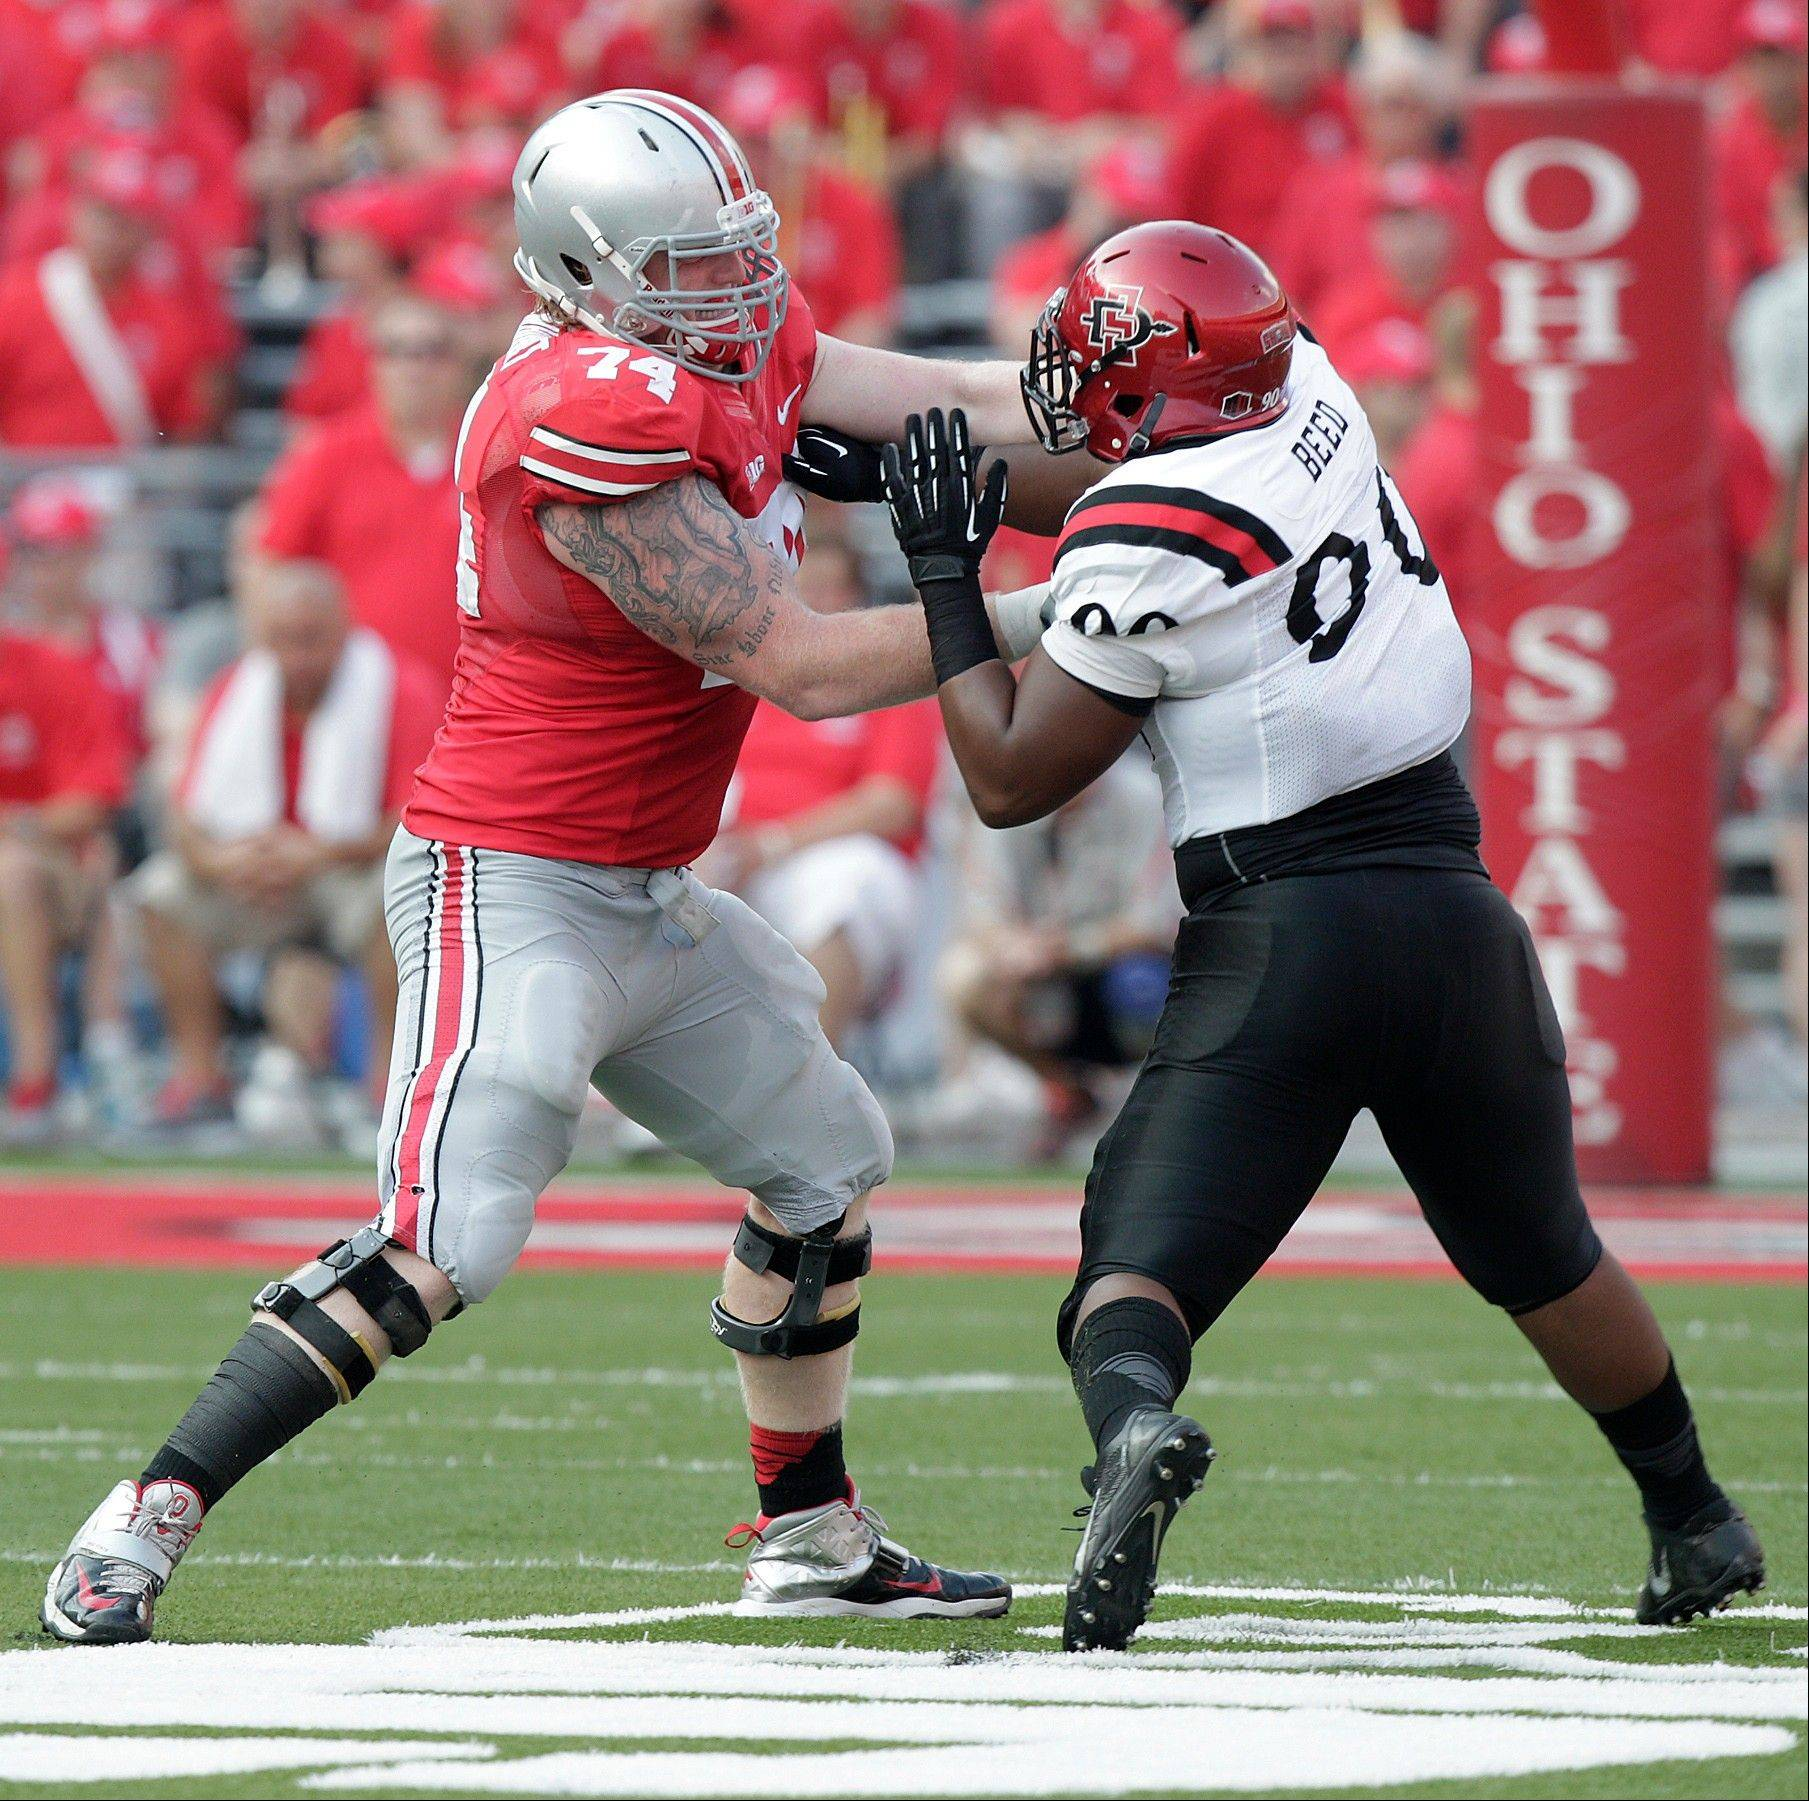 Ohio State offensive lineman Jack Mewhort blocks against San Diego State during the Sept. 7 game in Columbus, Ohio. Players on the Buckeyes� offensive line average 6-foot-6 and 310 pounds.